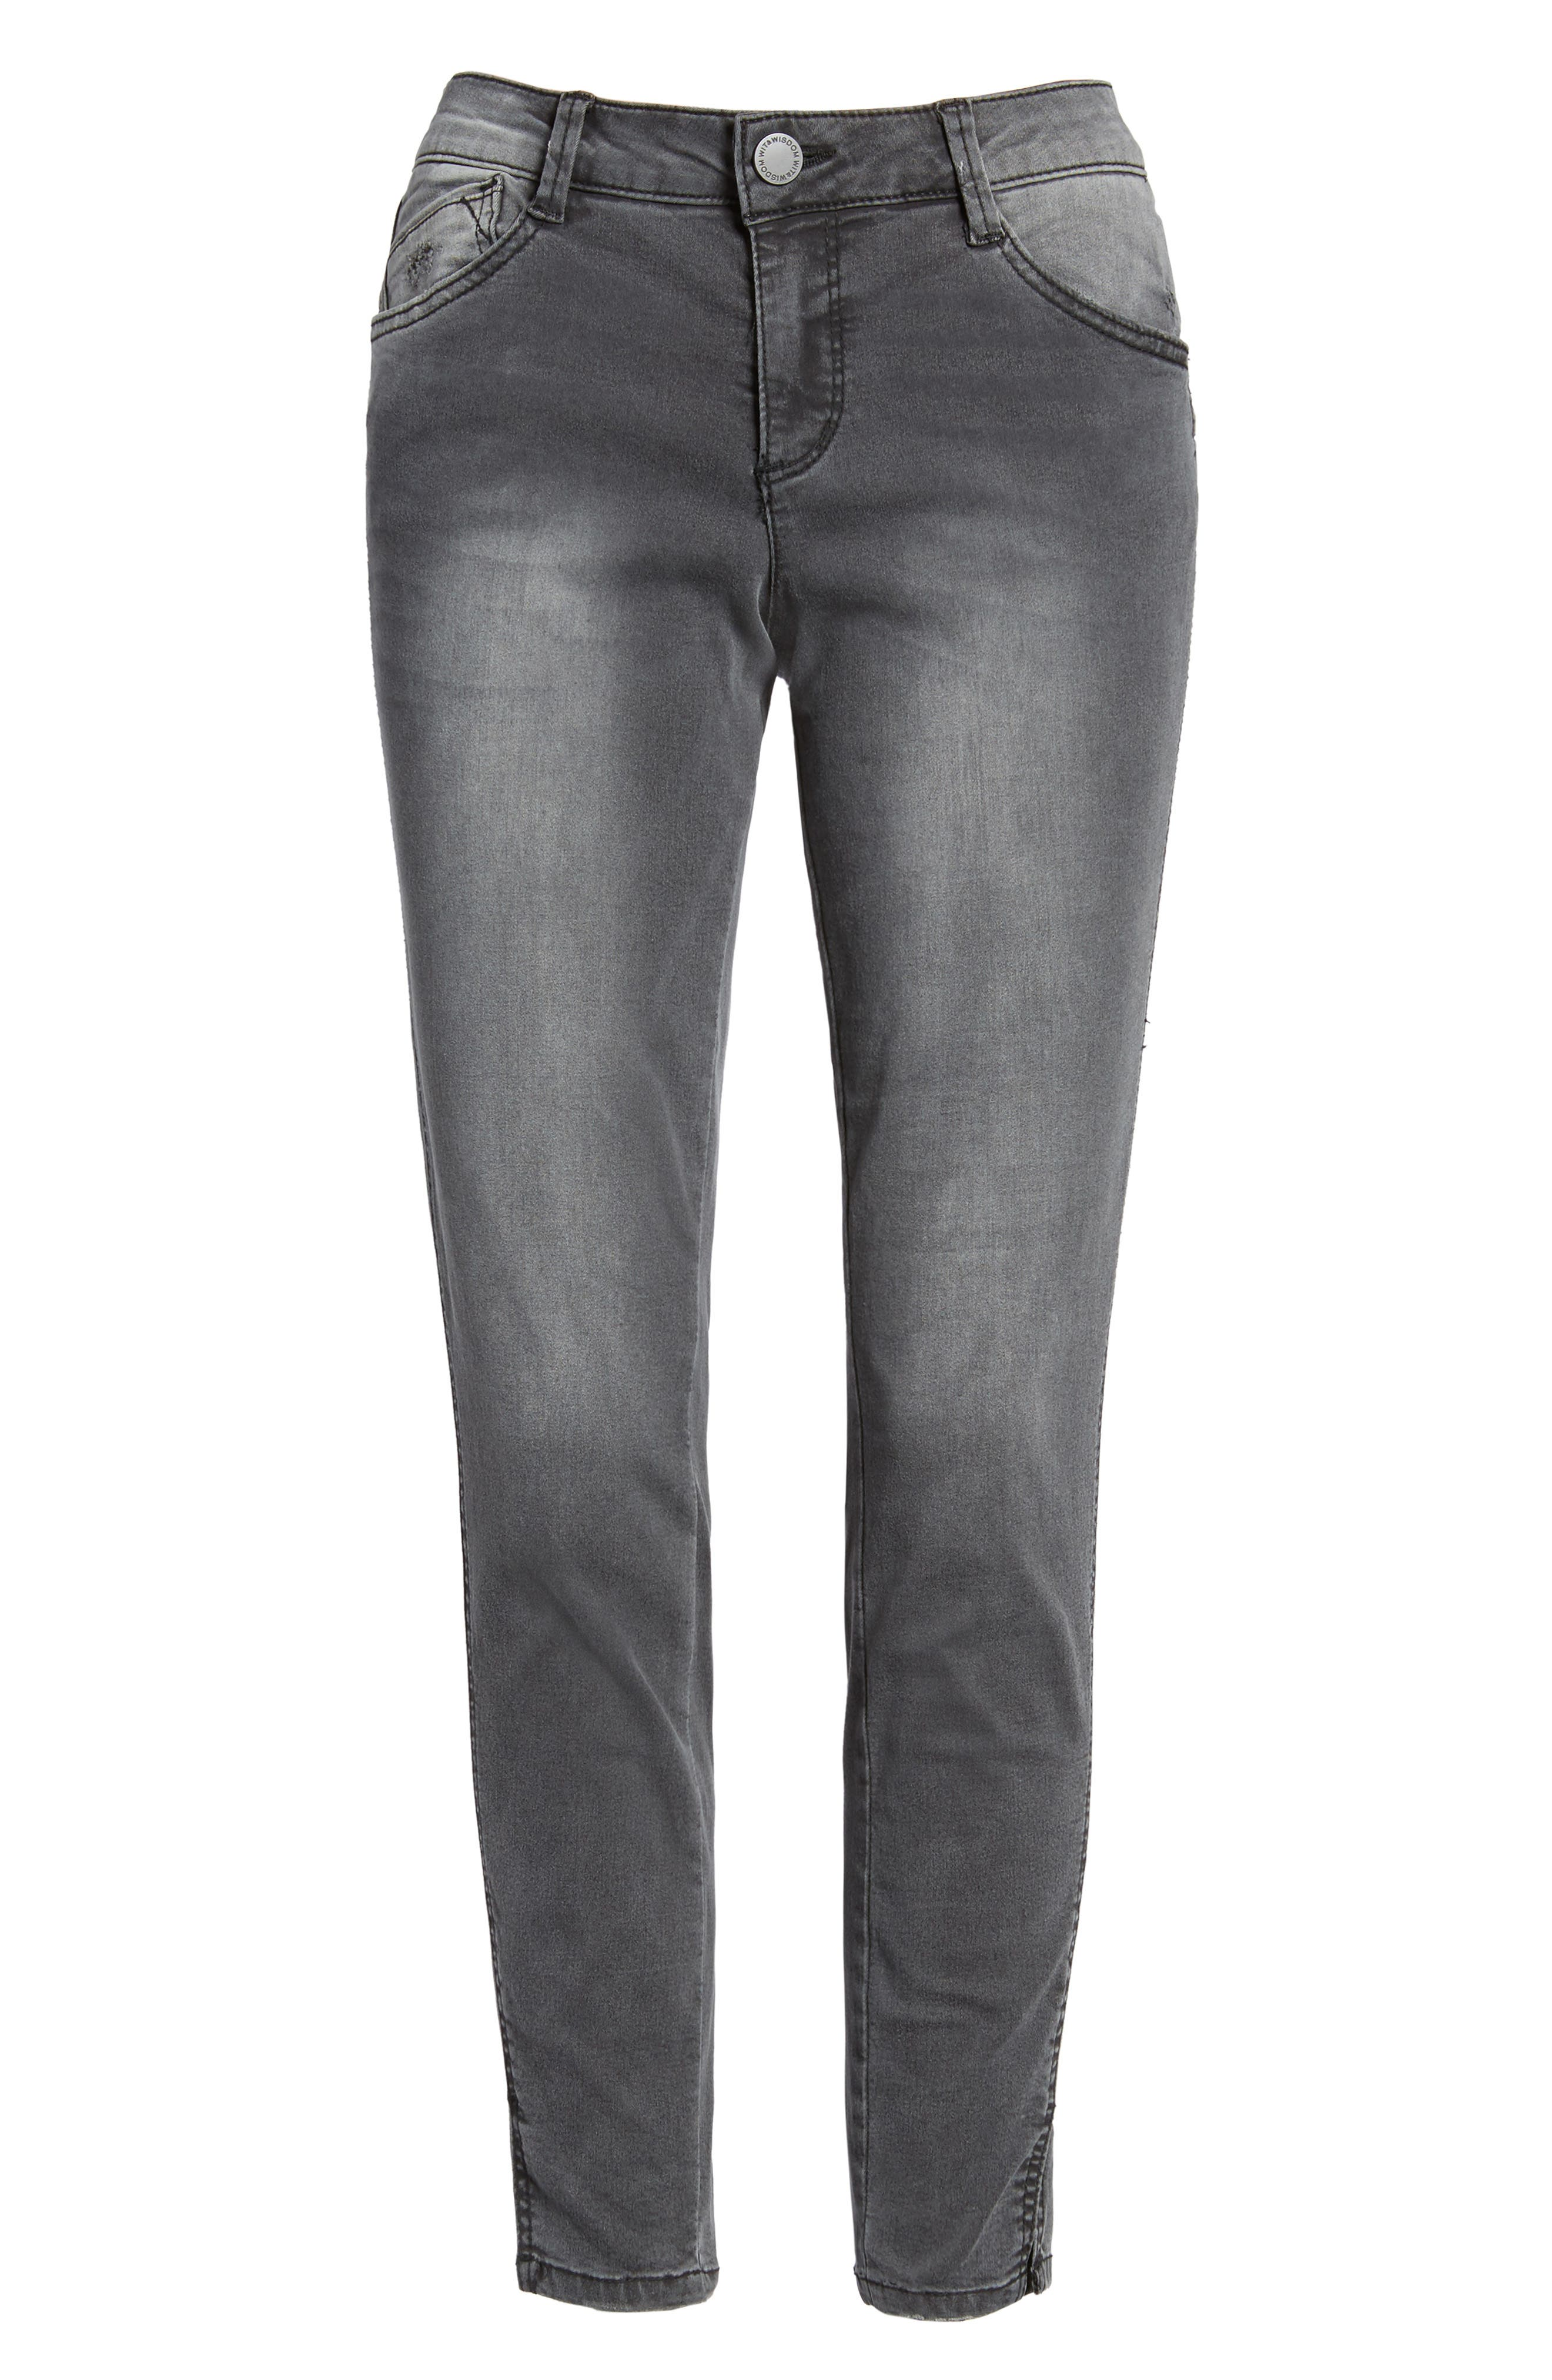 Slit Skinny Ankle Jeans,                             Alternate thumbnail 6, color,                             Grey